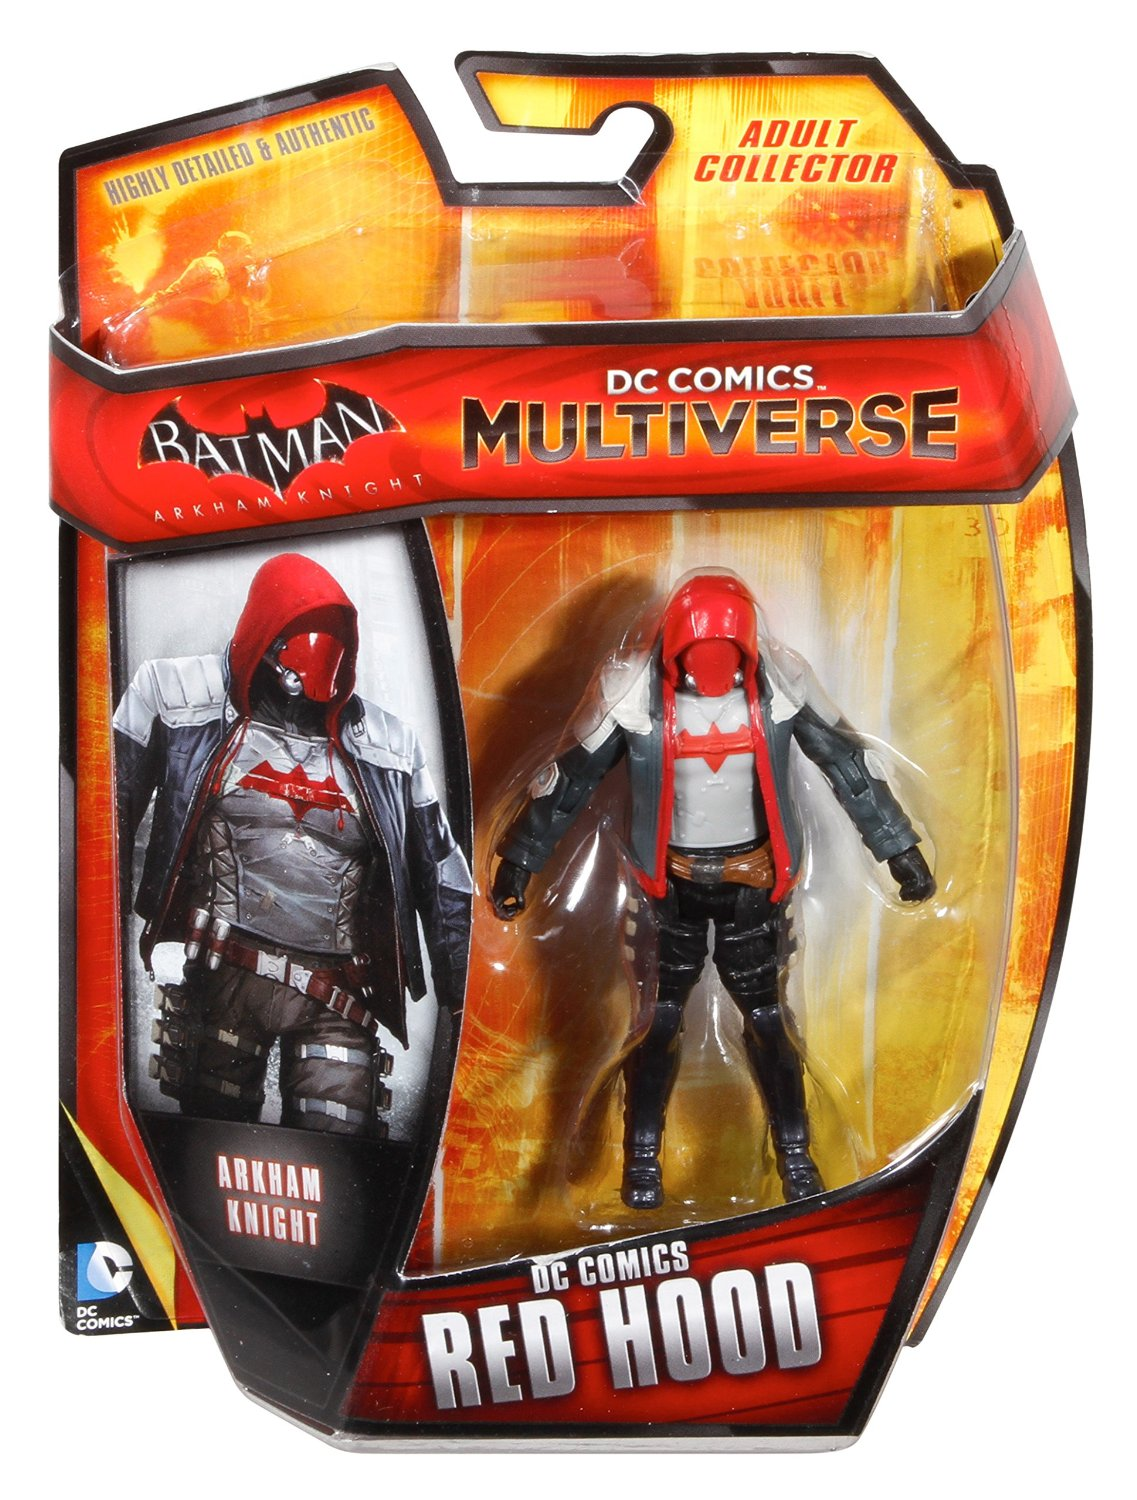 Arkham Knight's Red Hood